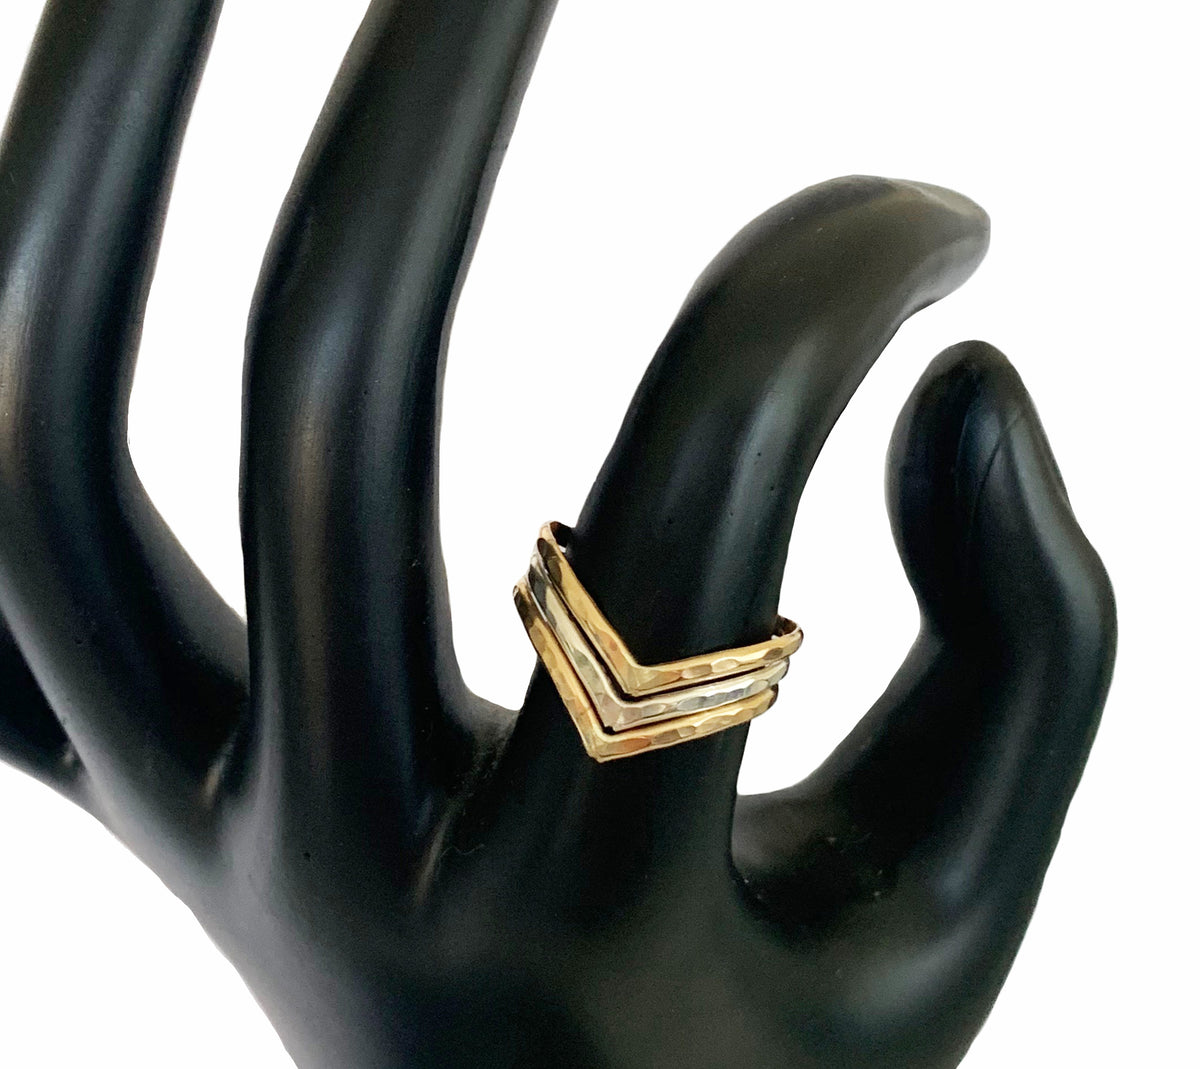 Triple Hammered Chevron Mixed Metal Thumb Ring on Index Finger